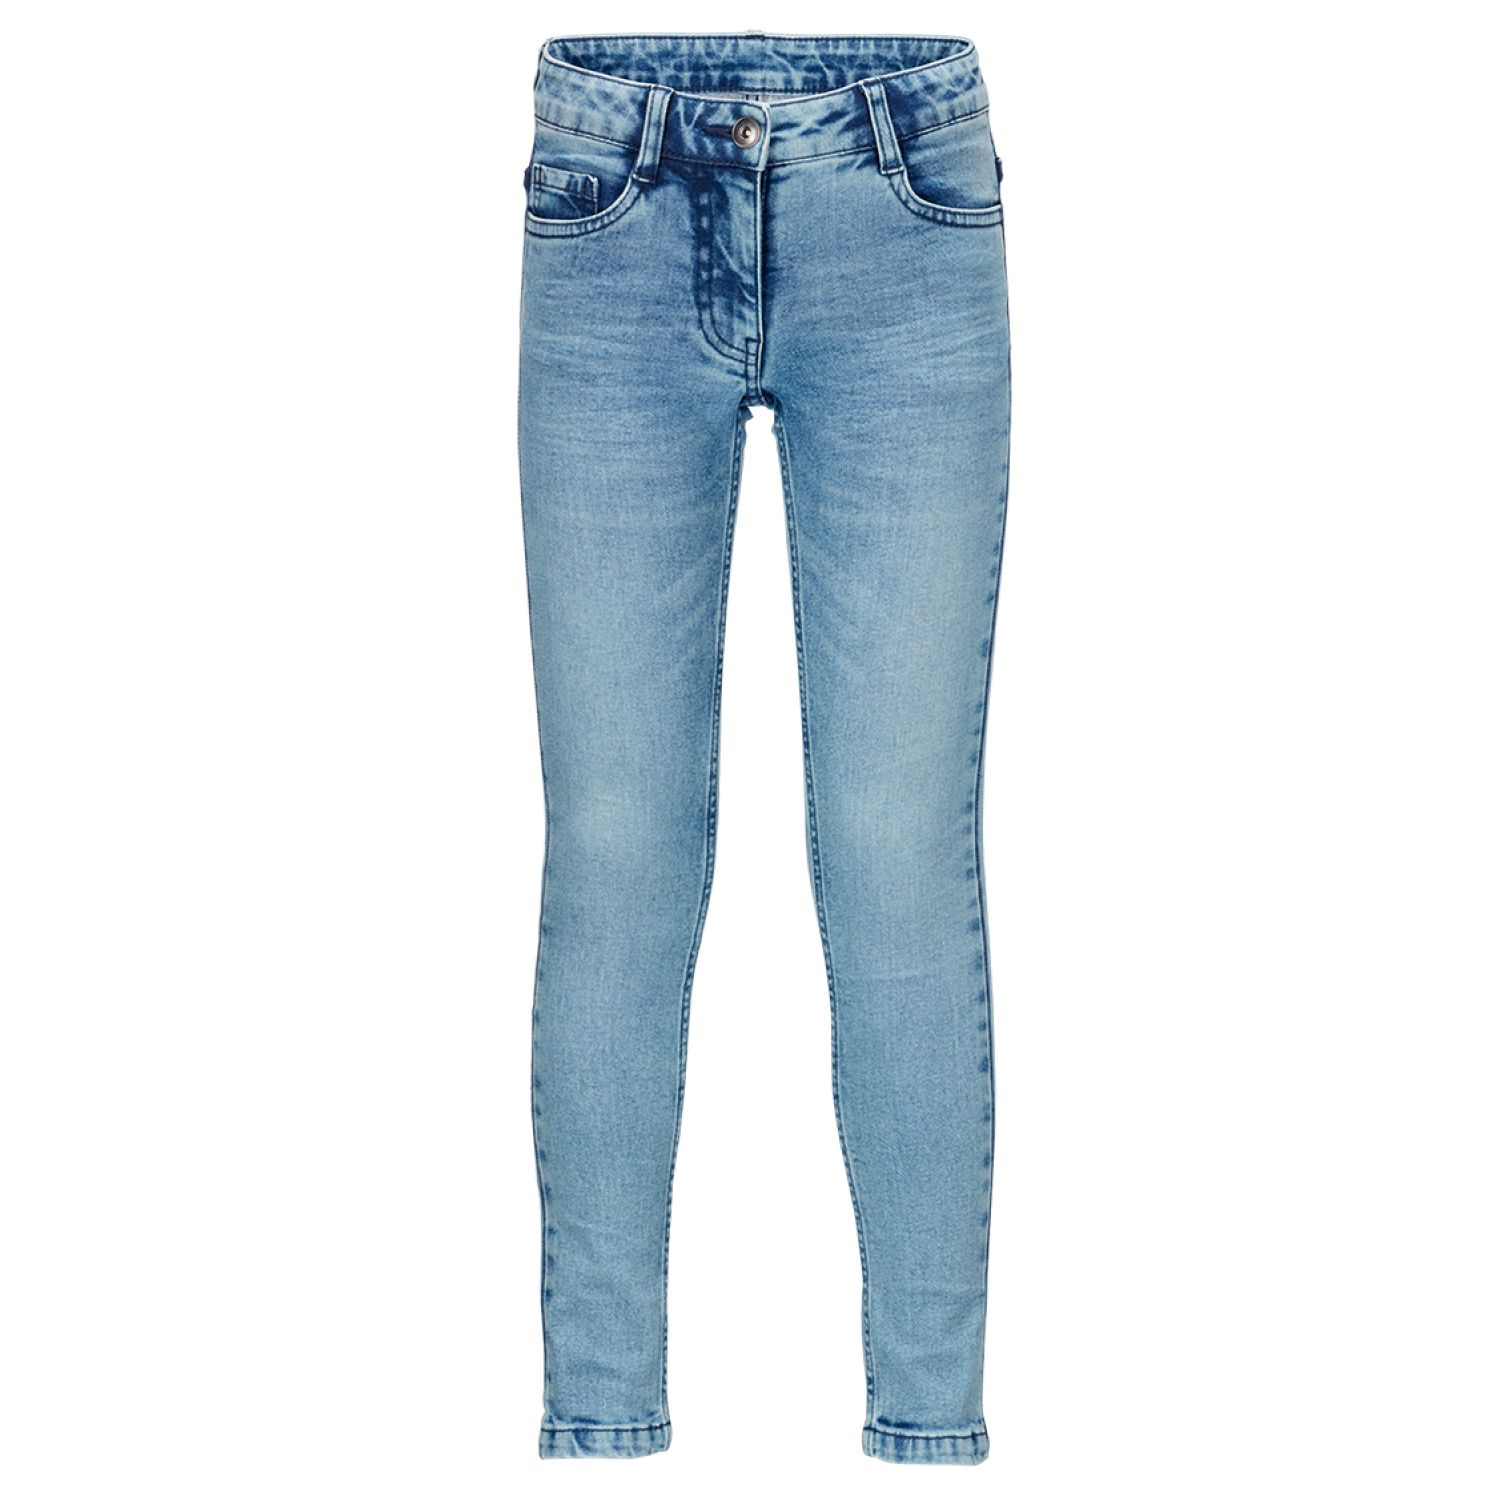 alive® Jeans*